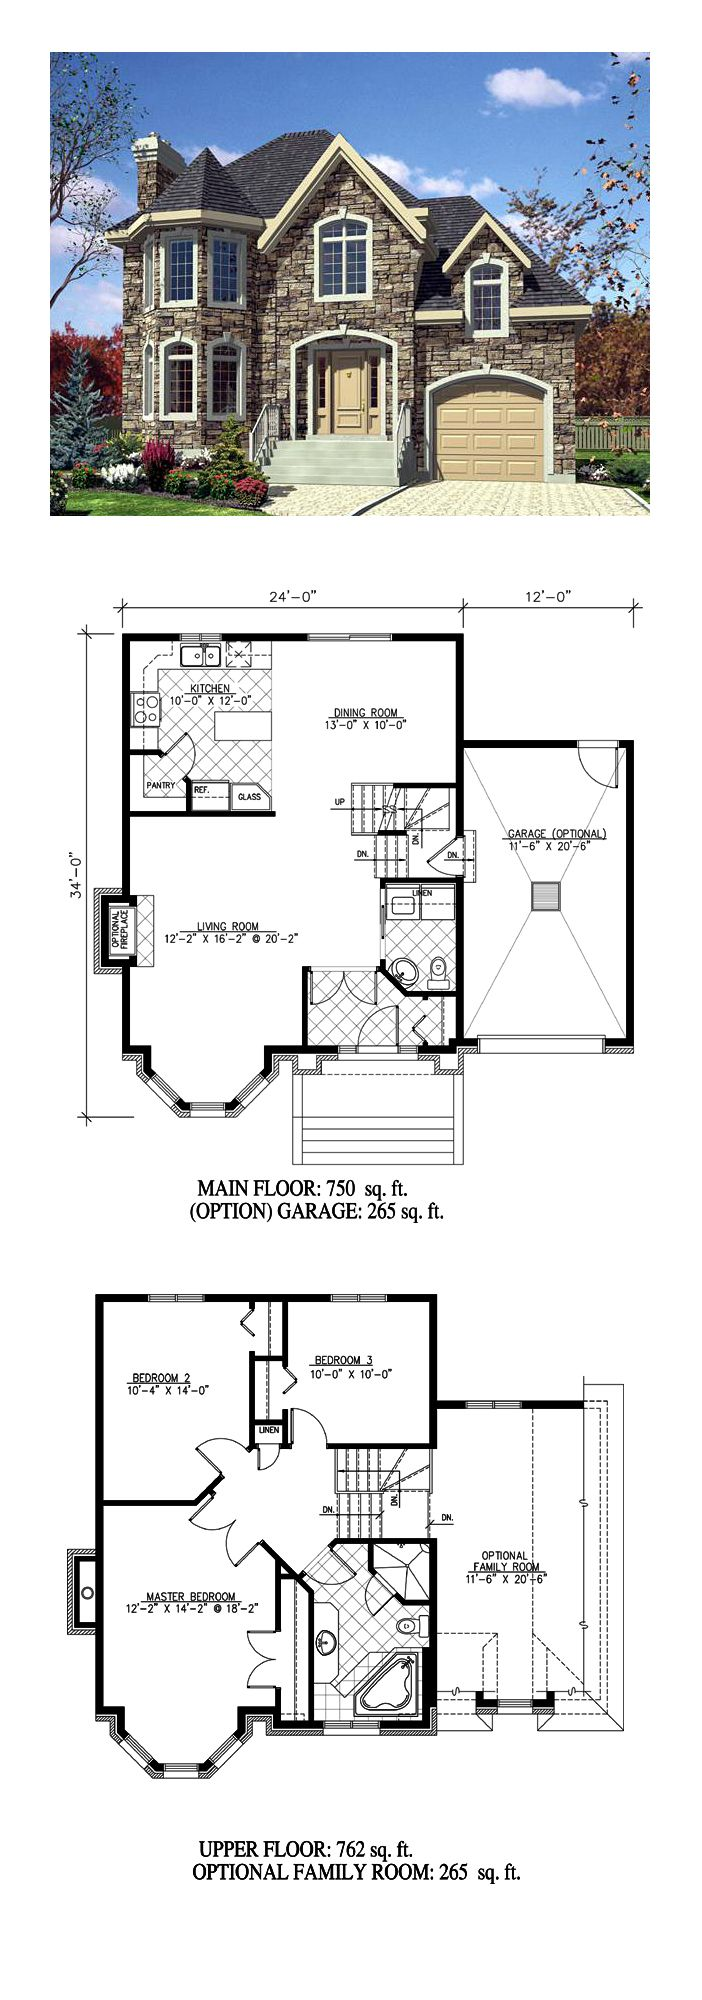 Best 25 sims house ideas on pinterest sims house plans for Family home designs